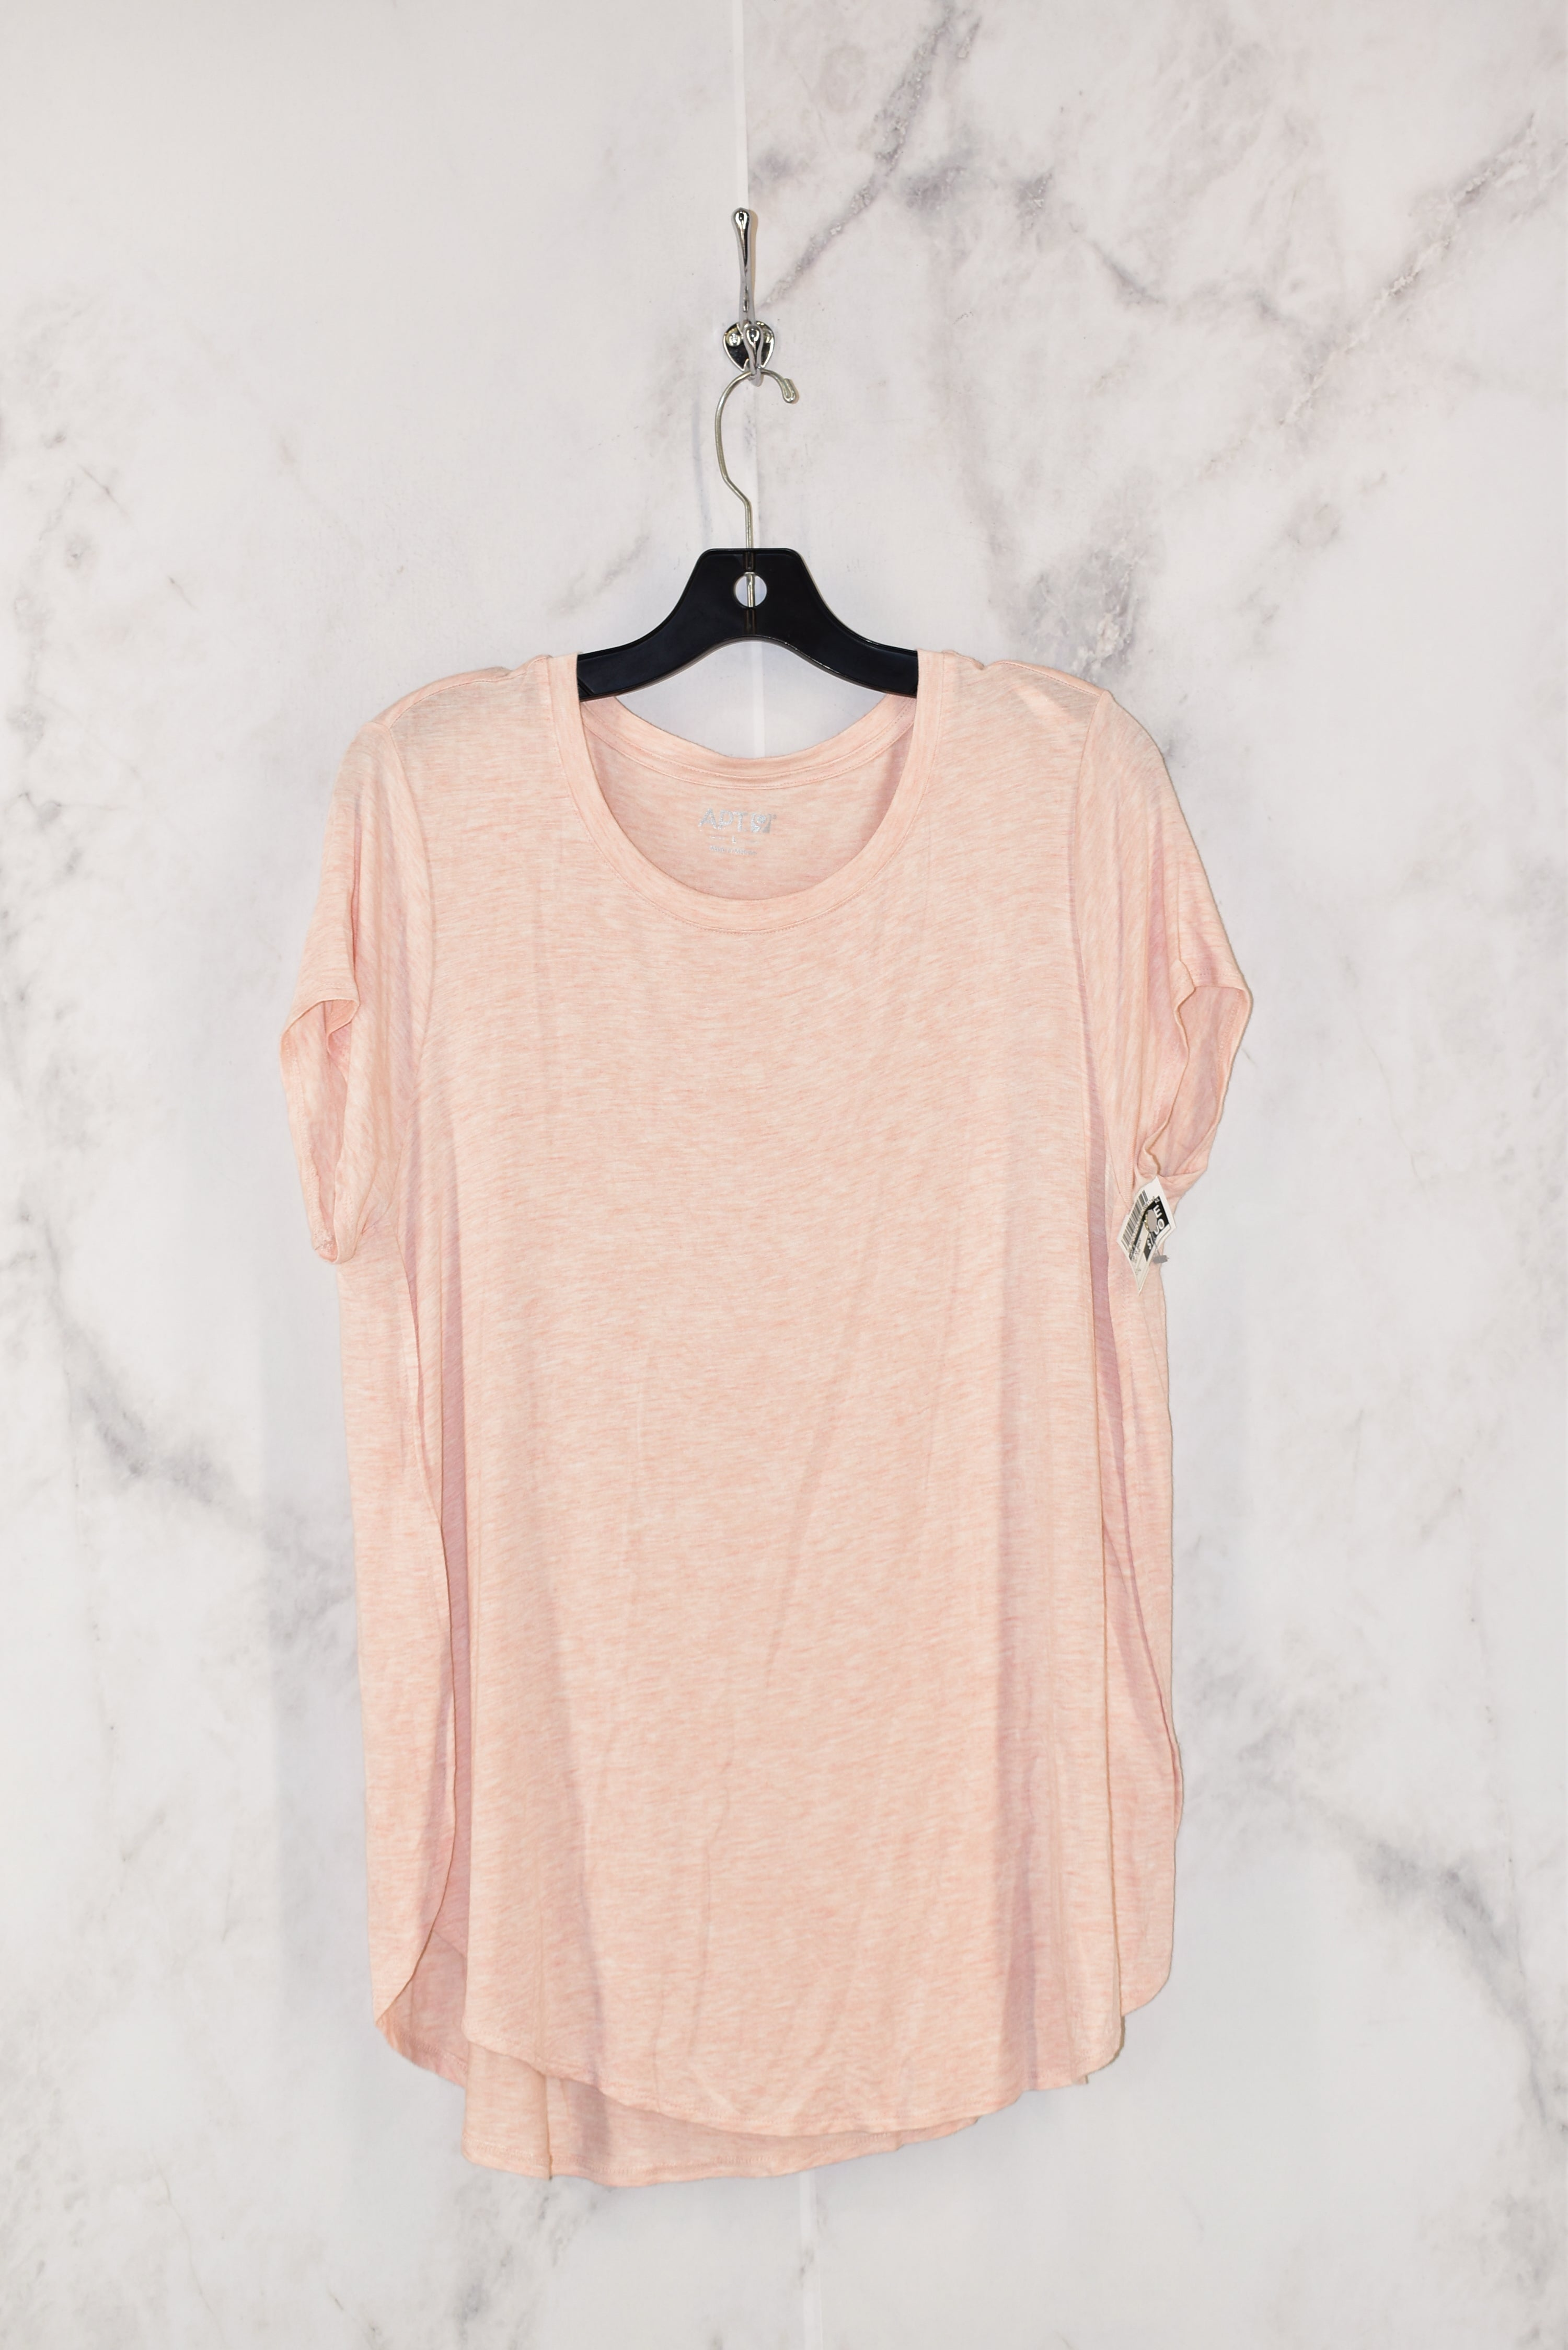 Primary Photo - BRAND: APT 9 <BR>STYLE: TOP SHORT SLEEVE BASIC <BR>COLOR: LIGHT PINK <BR>SIZE: L <BR>SKU: 186-186213-3141